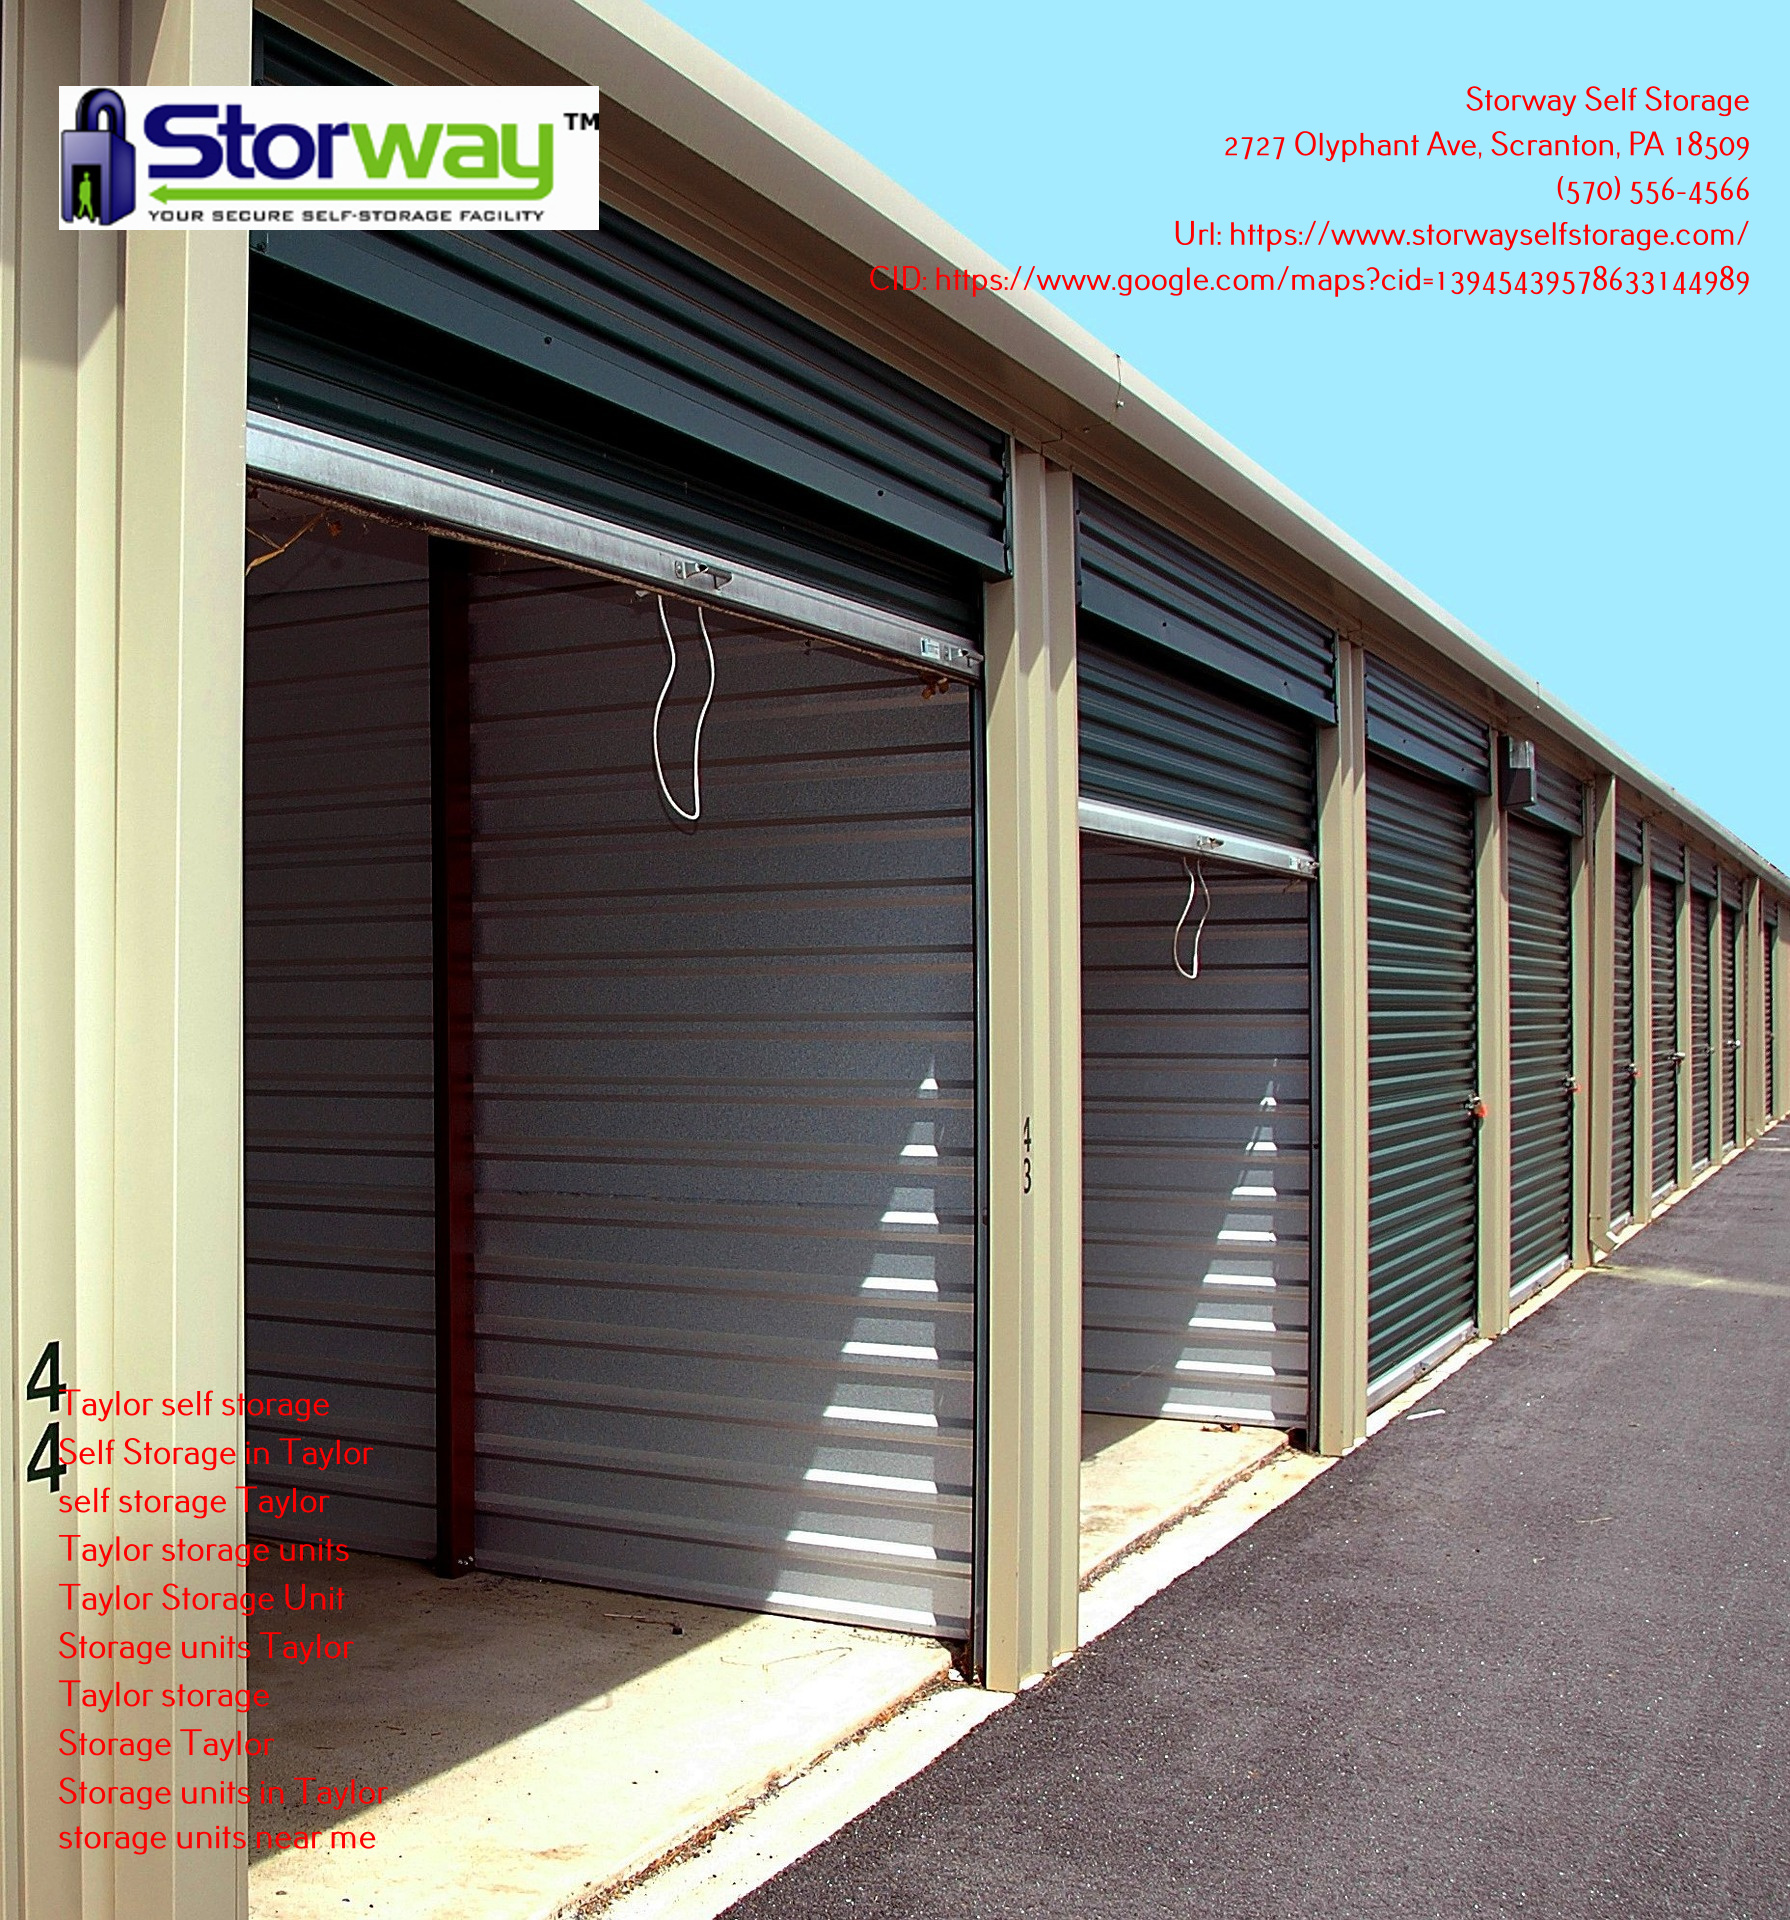 Storage Units in Taylor, Pennsylvania - Adding Space is Essential